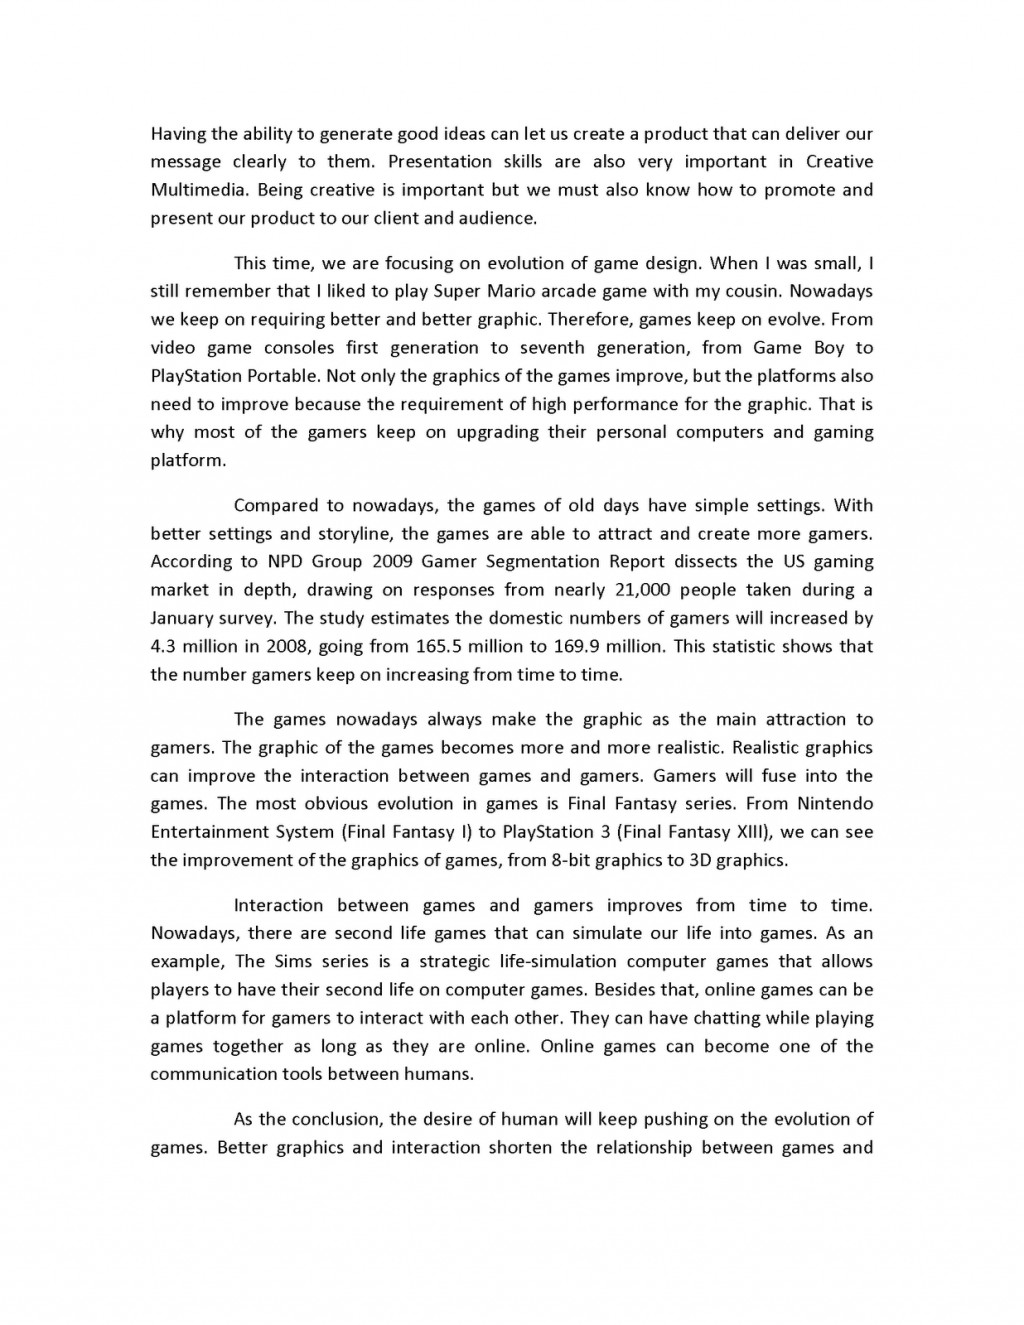 019 Creative20multimedia202 Page 2 Process Essay Ideas Marvelous Funny Analysis Large